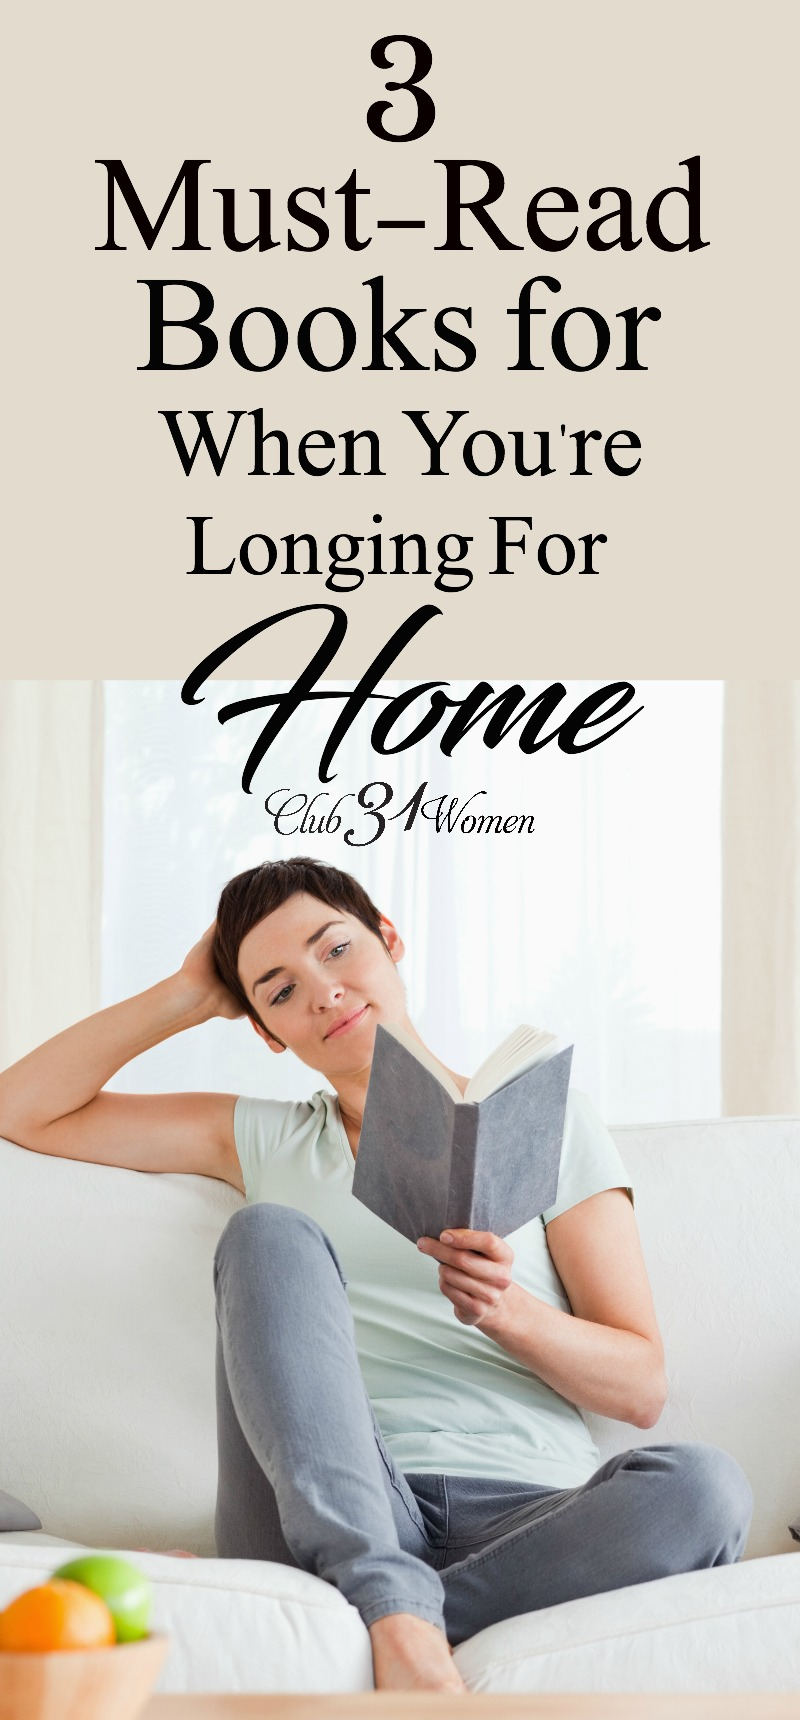 What does home mean to you? If you're ready to get lost in a book that pulls you into a place that calls you home, check out these great book recommendations! via @Club31Women